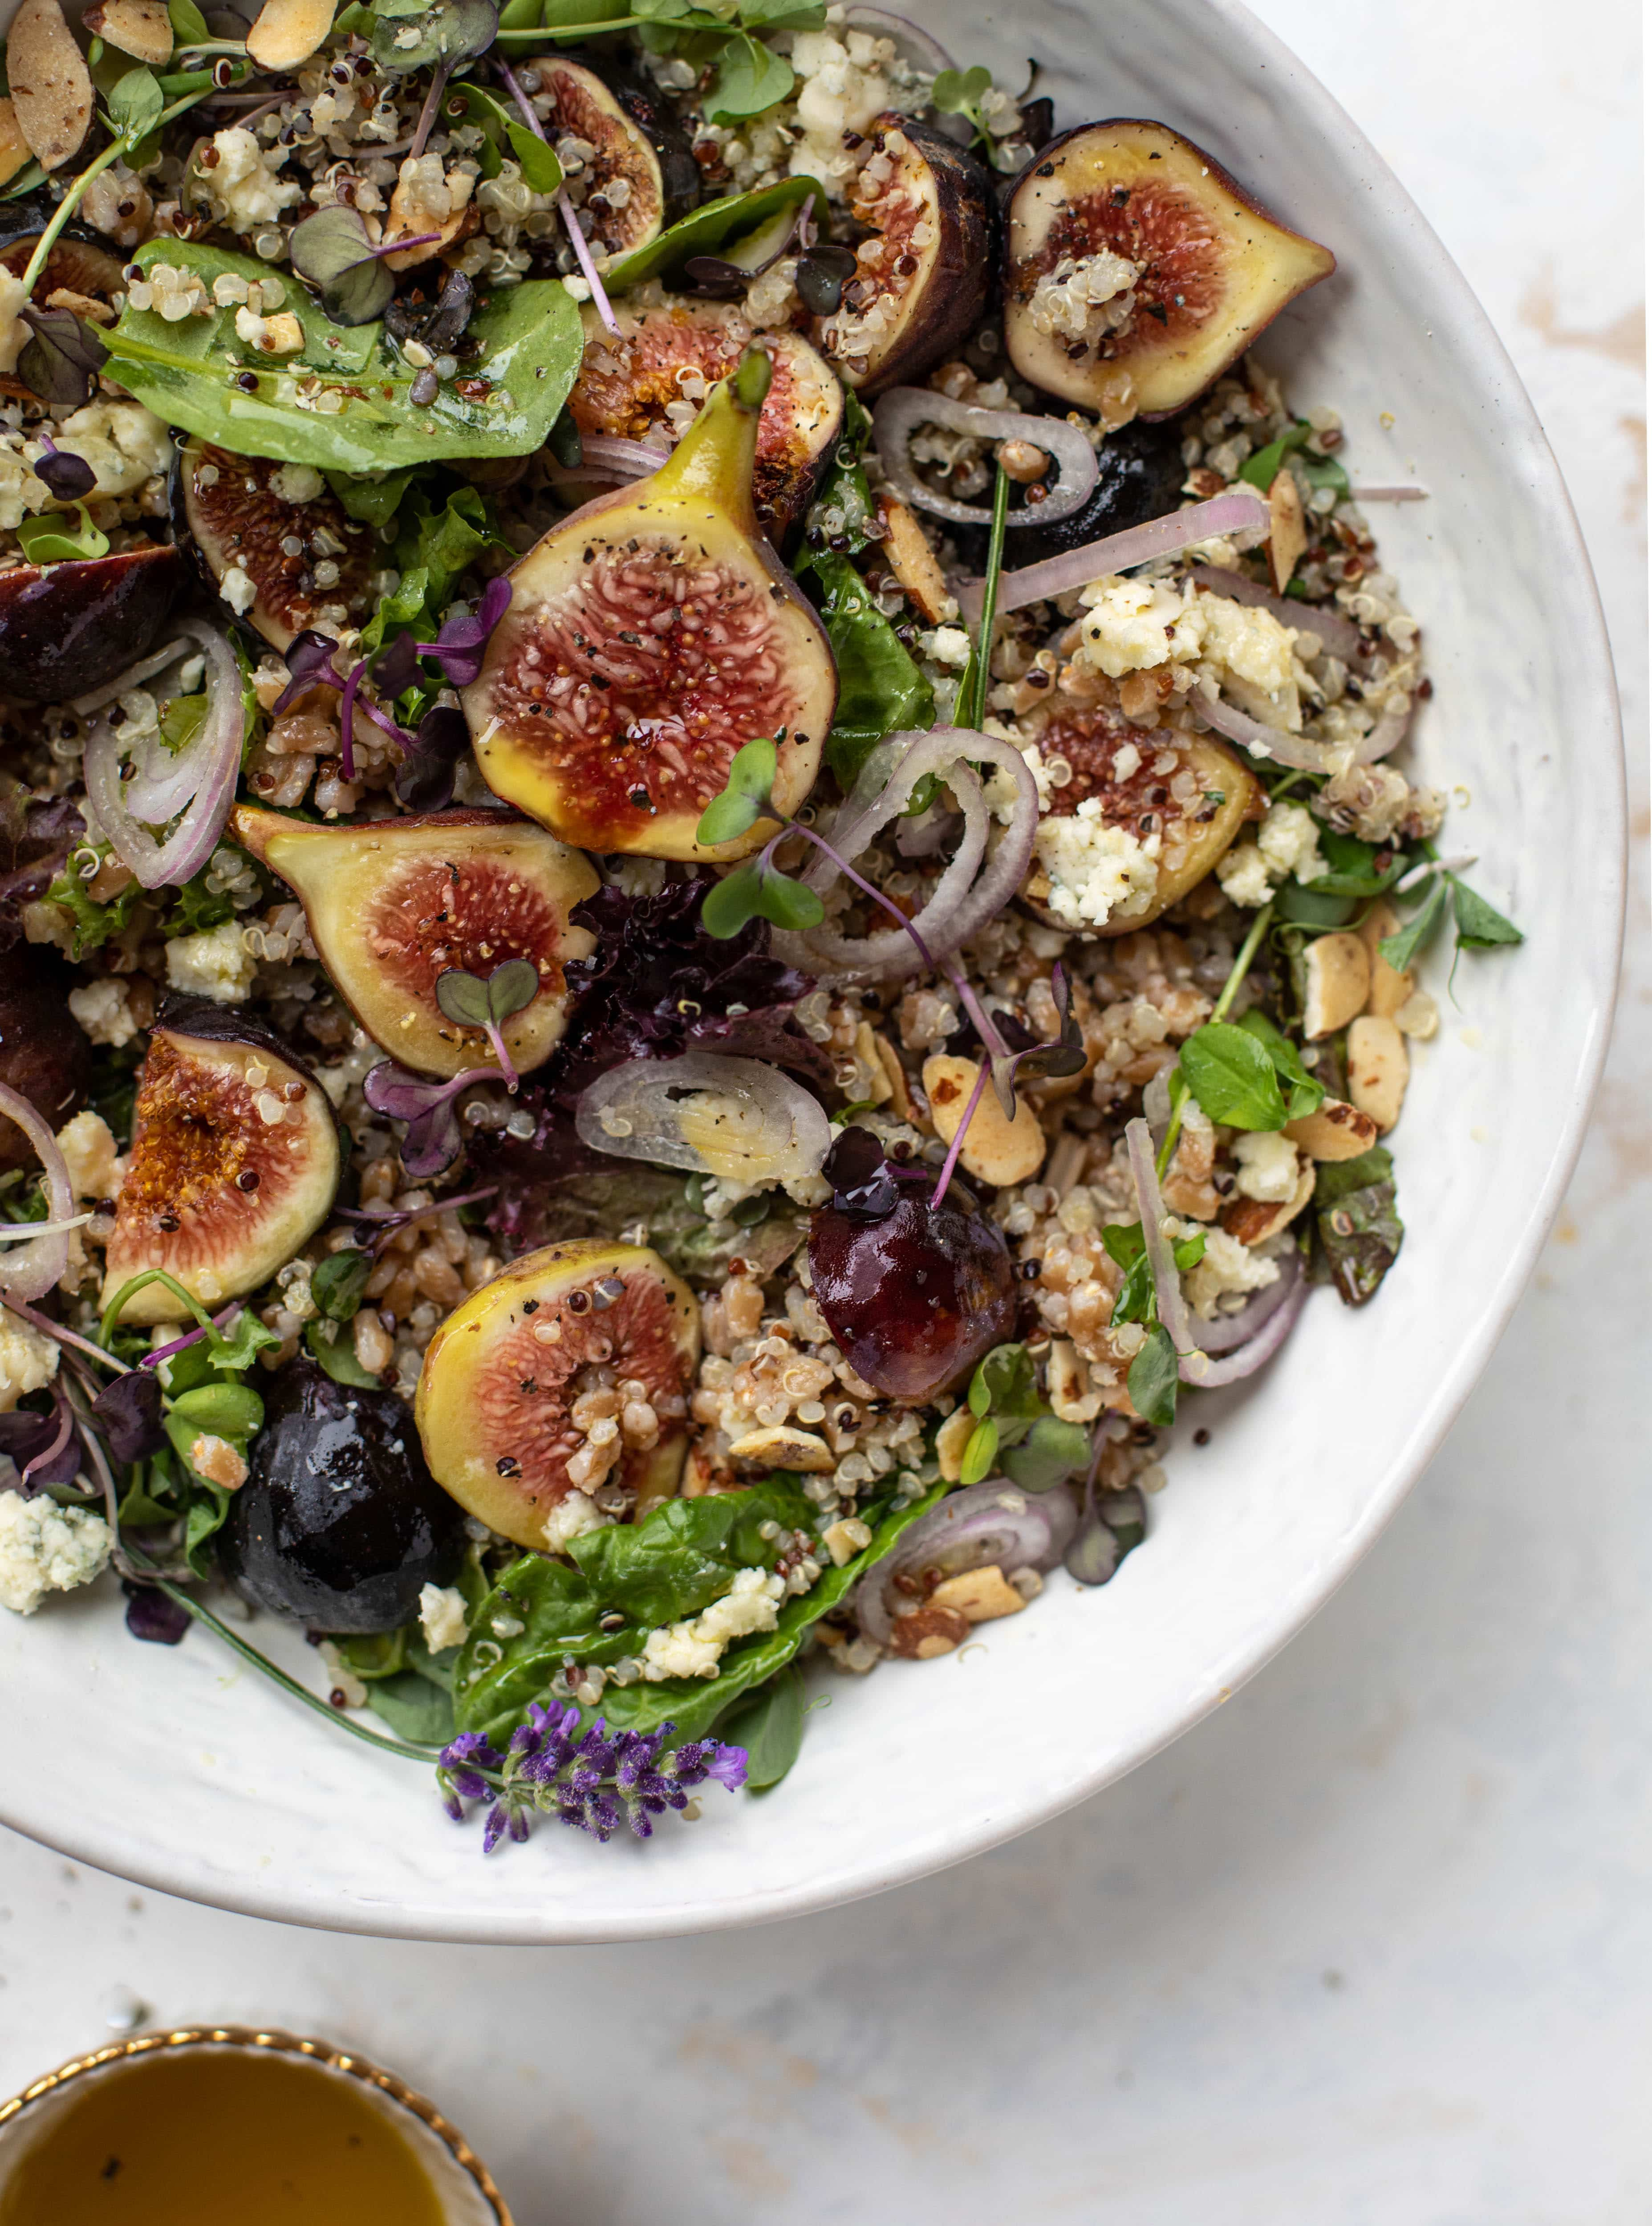 These grain bowls are the perfect September salad! Juicy figs, greens, quinoa, farro, almonds and a lemon lavender vinaigrette make this bowl irresistible.